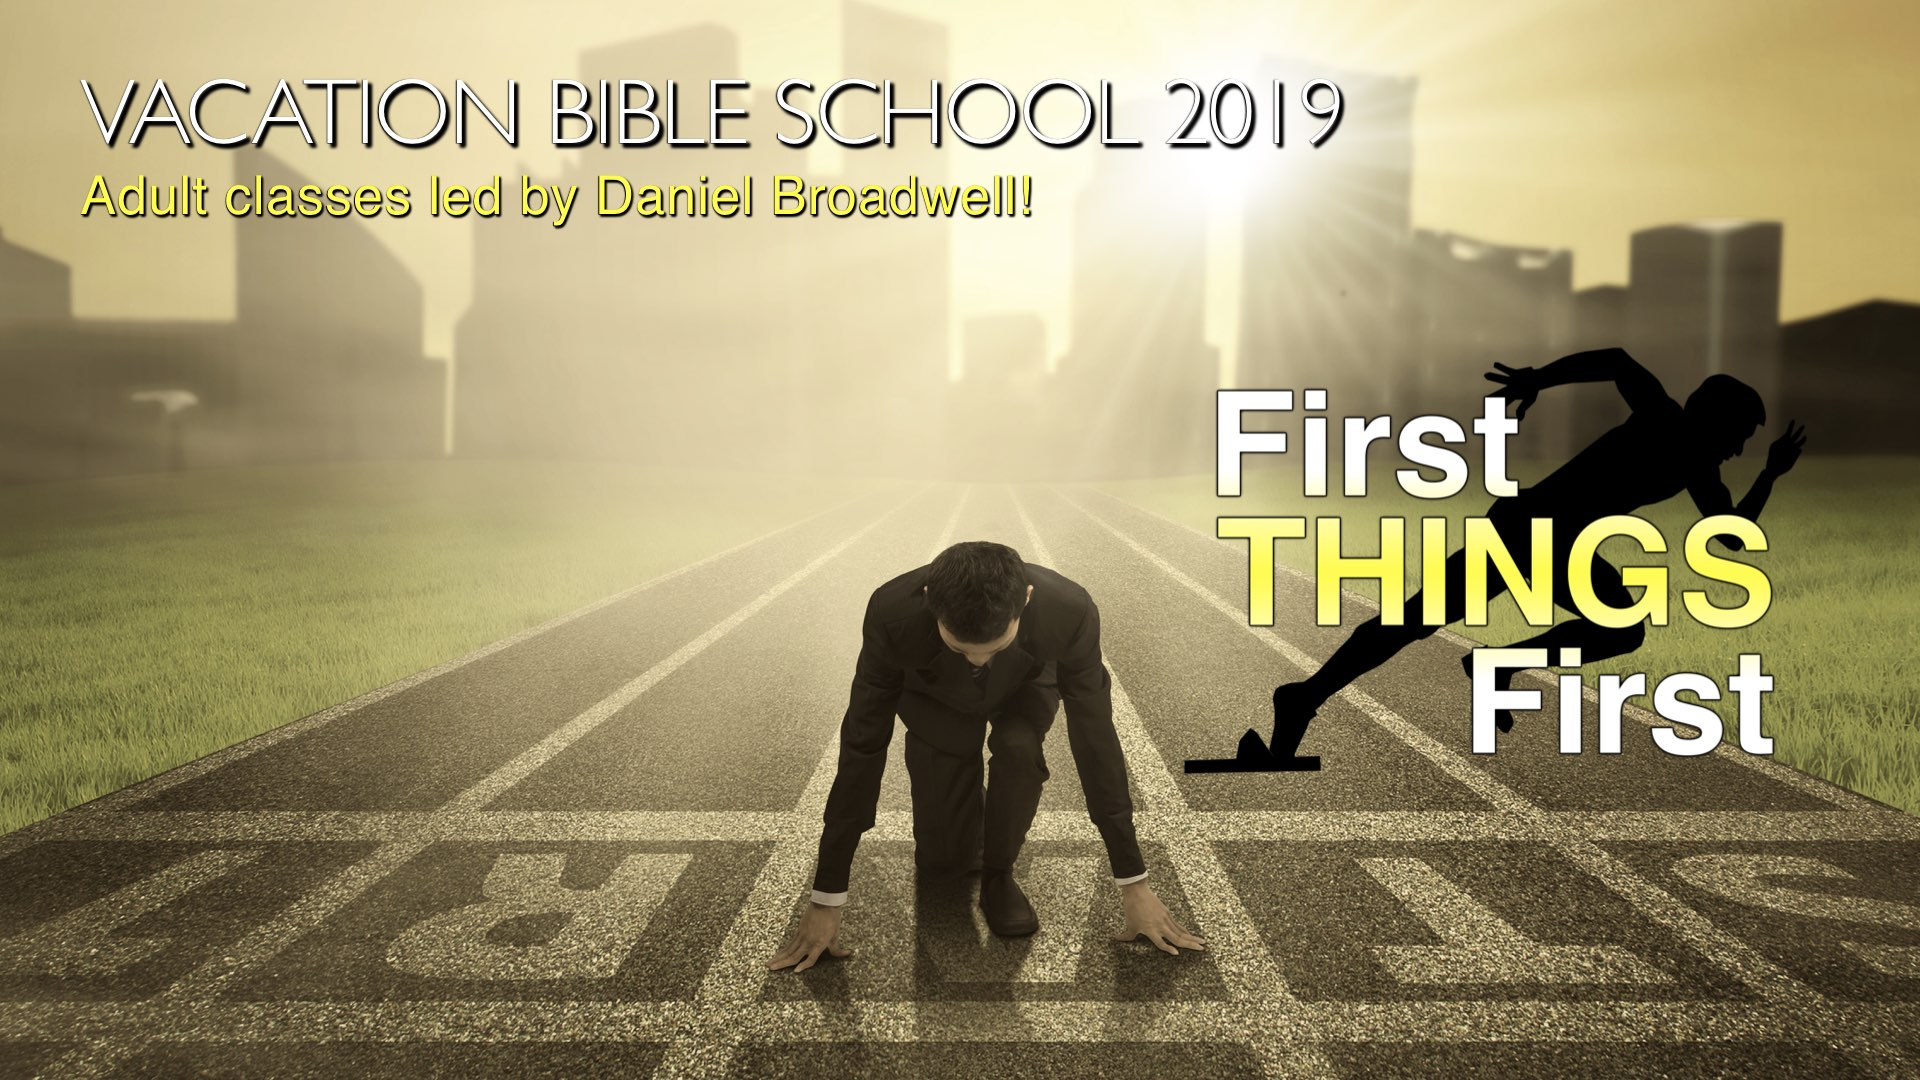 Vacation Bible School 2019 with Daniel Broadwell